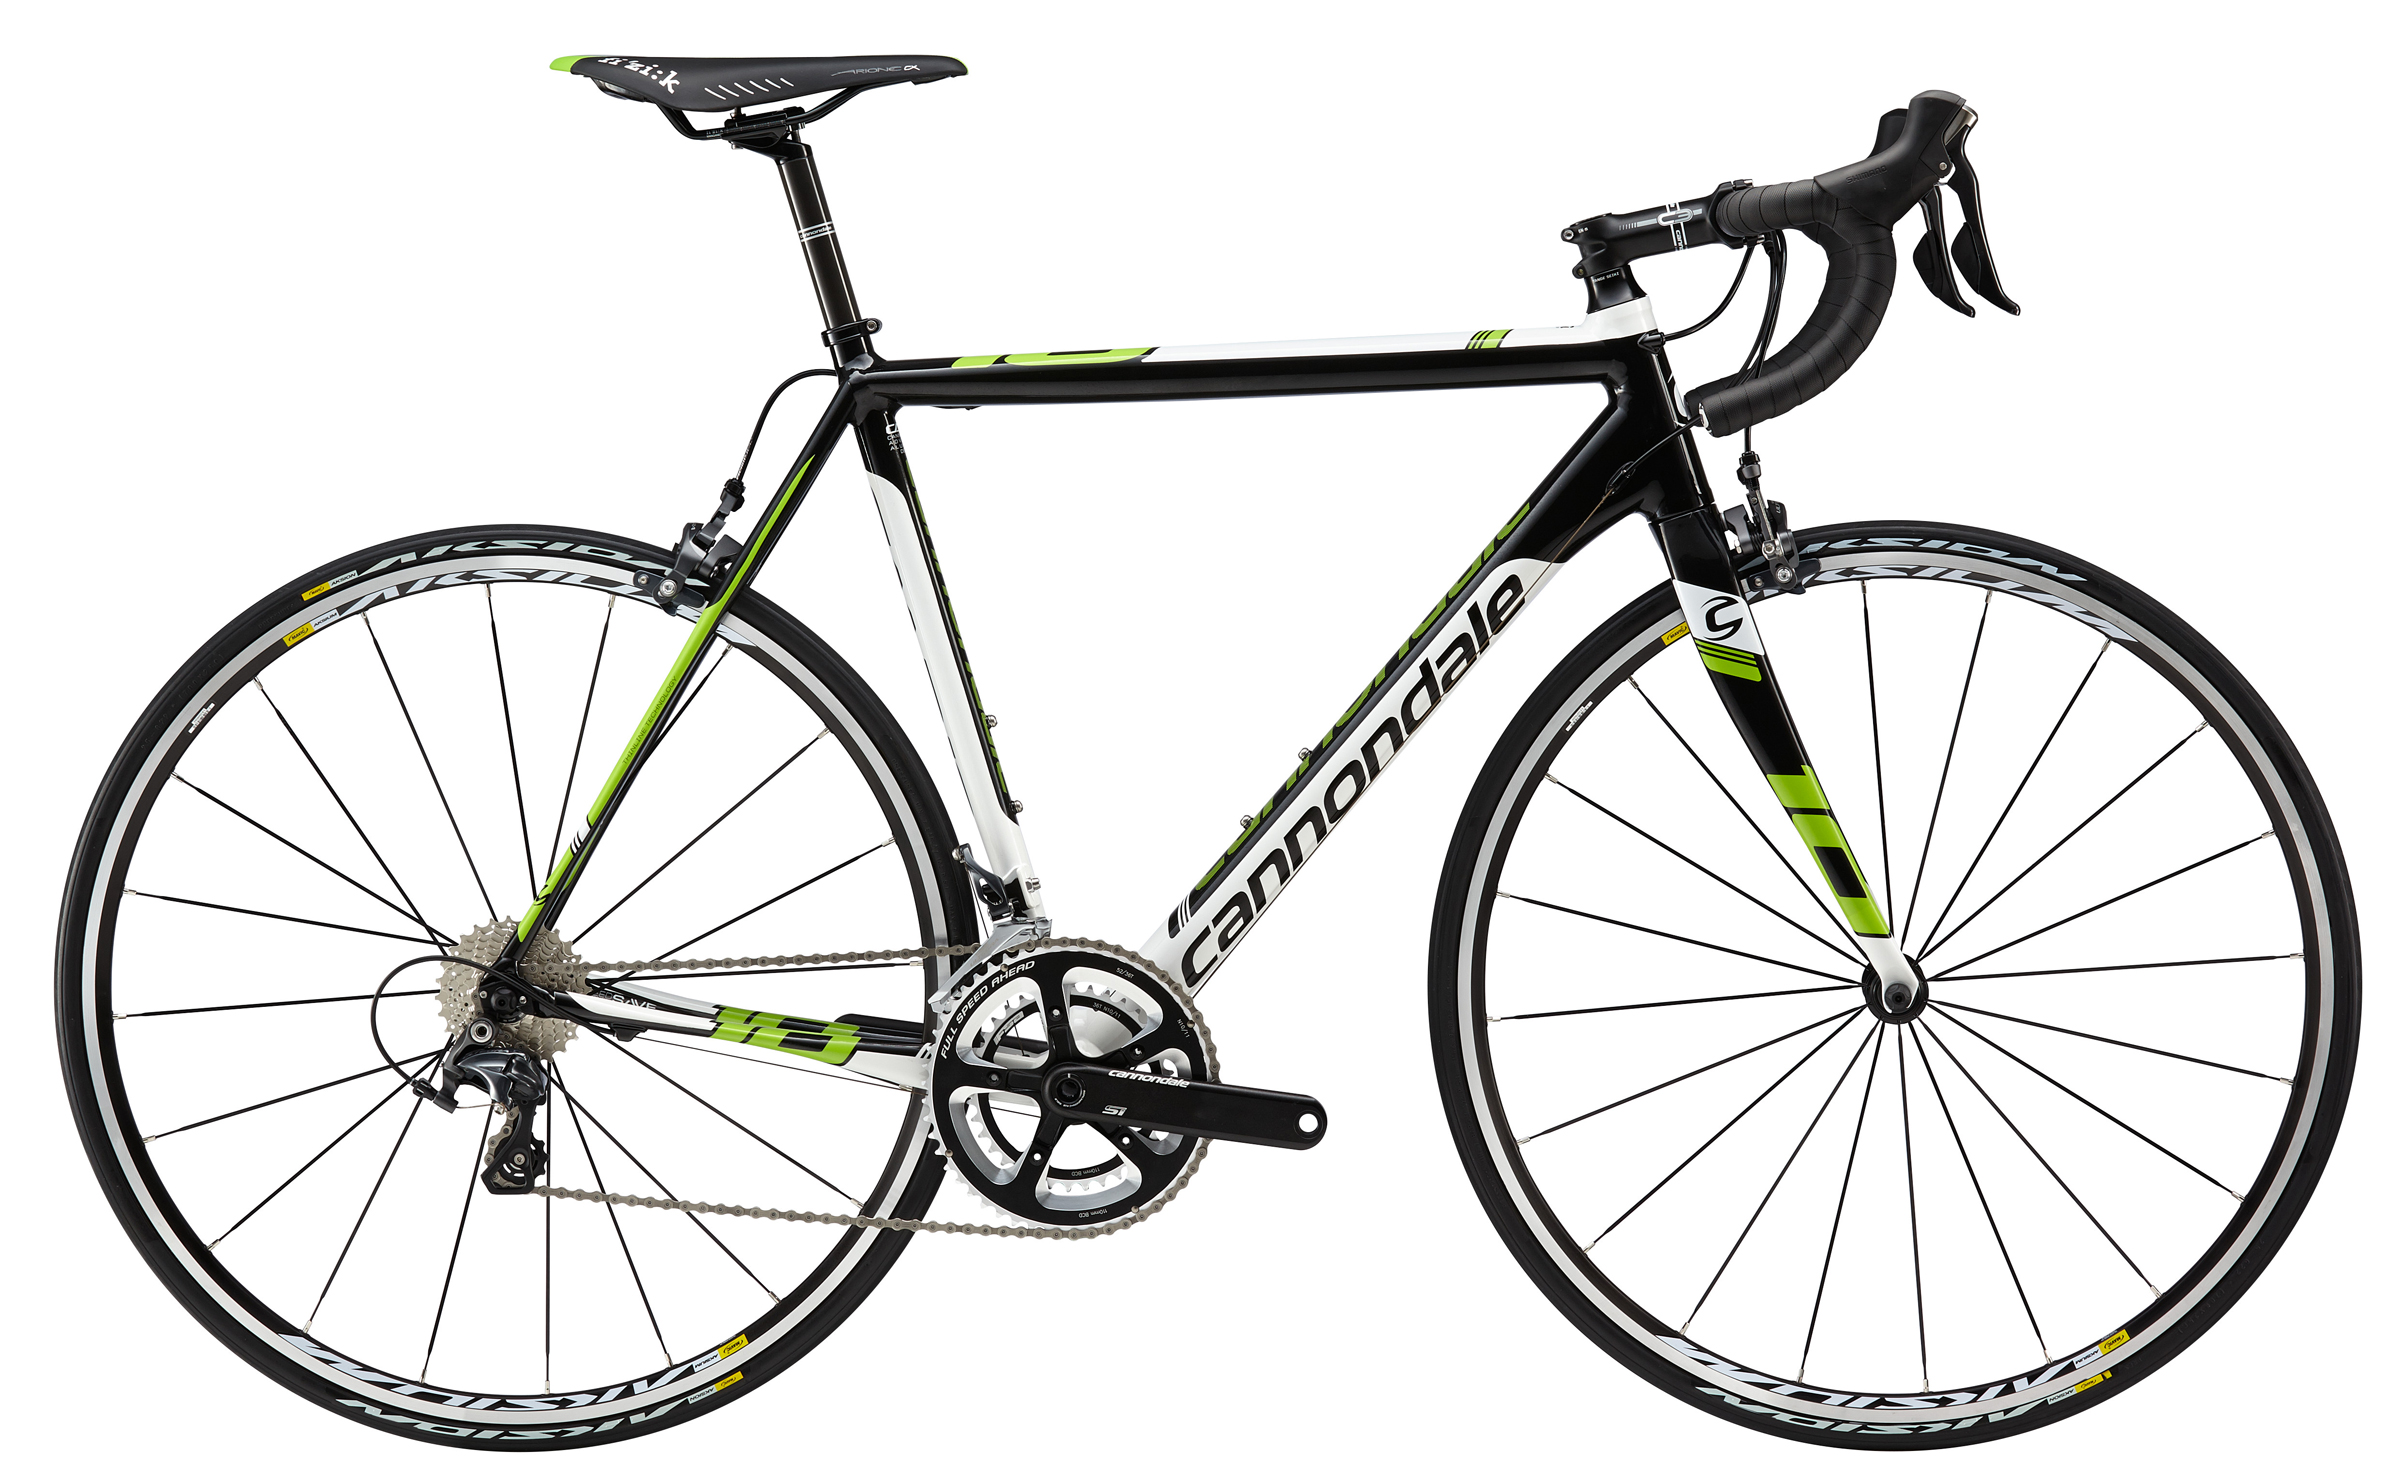 d8801f9aec1 Cannondale CAAD10 Ultegra 3 - Toga! New York's Oldest and Largest ...